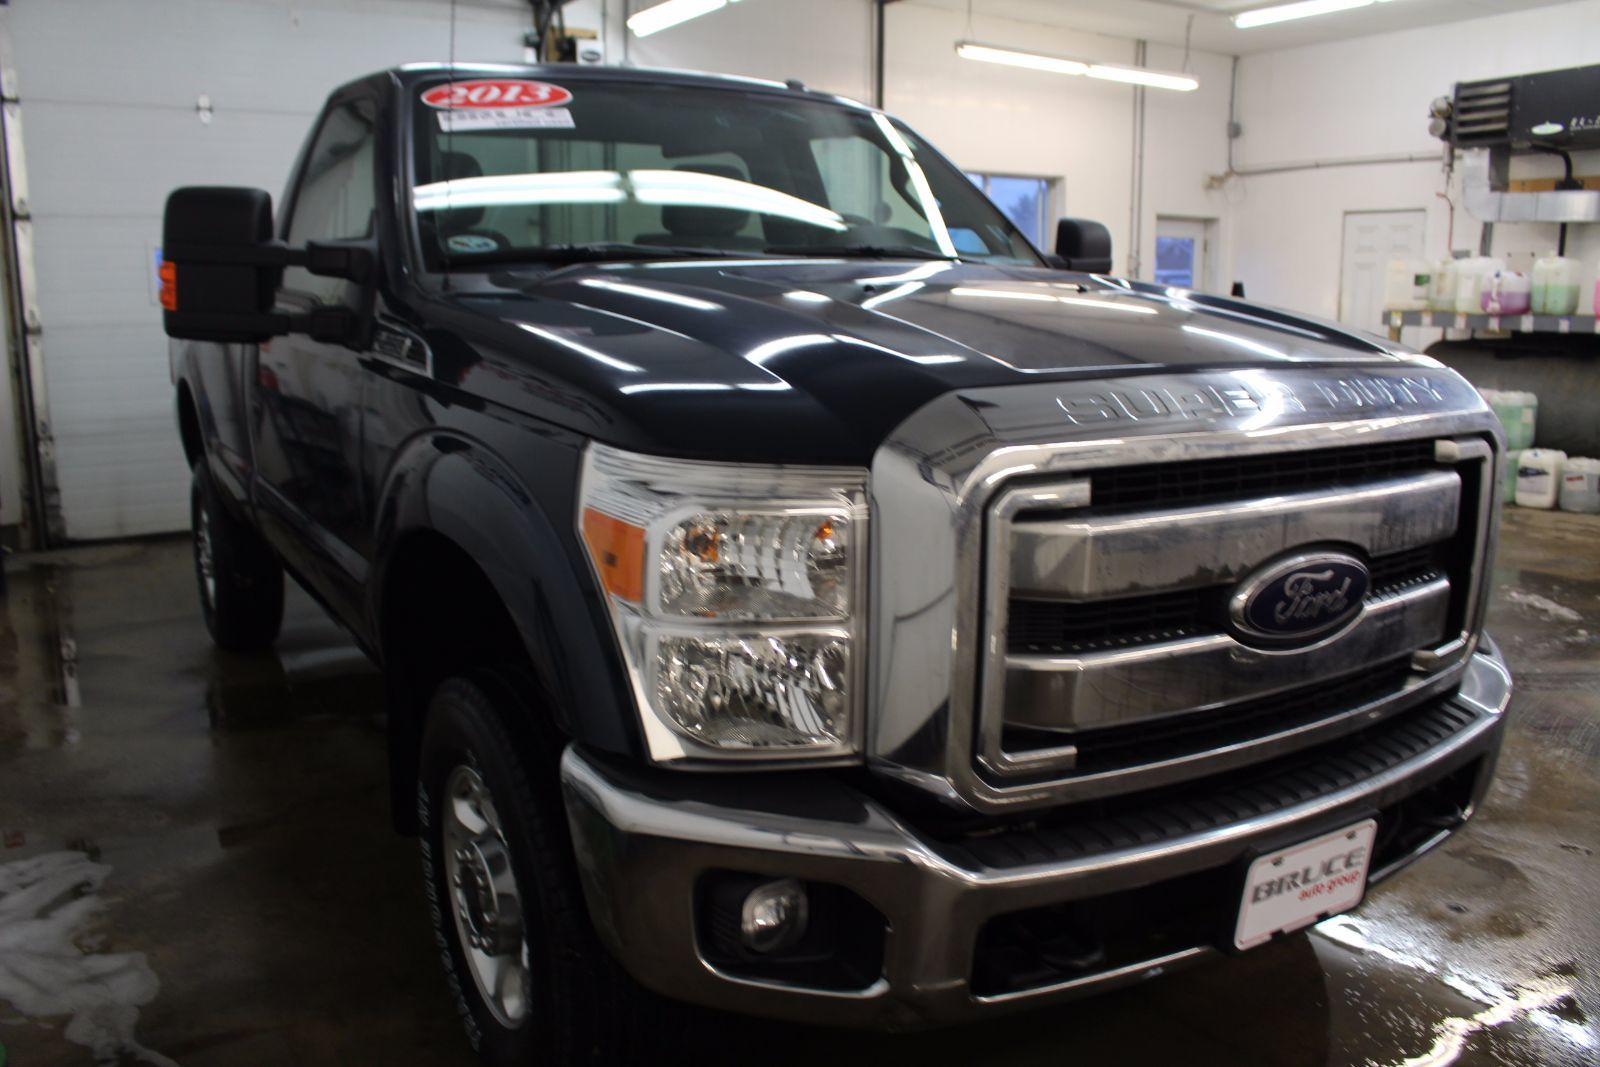 used 2015 ford f 250 superduty srw 6 2l 8 cyl automatic 4x4 regular cab in middleton f16549a. Black Bedroom Furniture Sets. Home Design Ideas